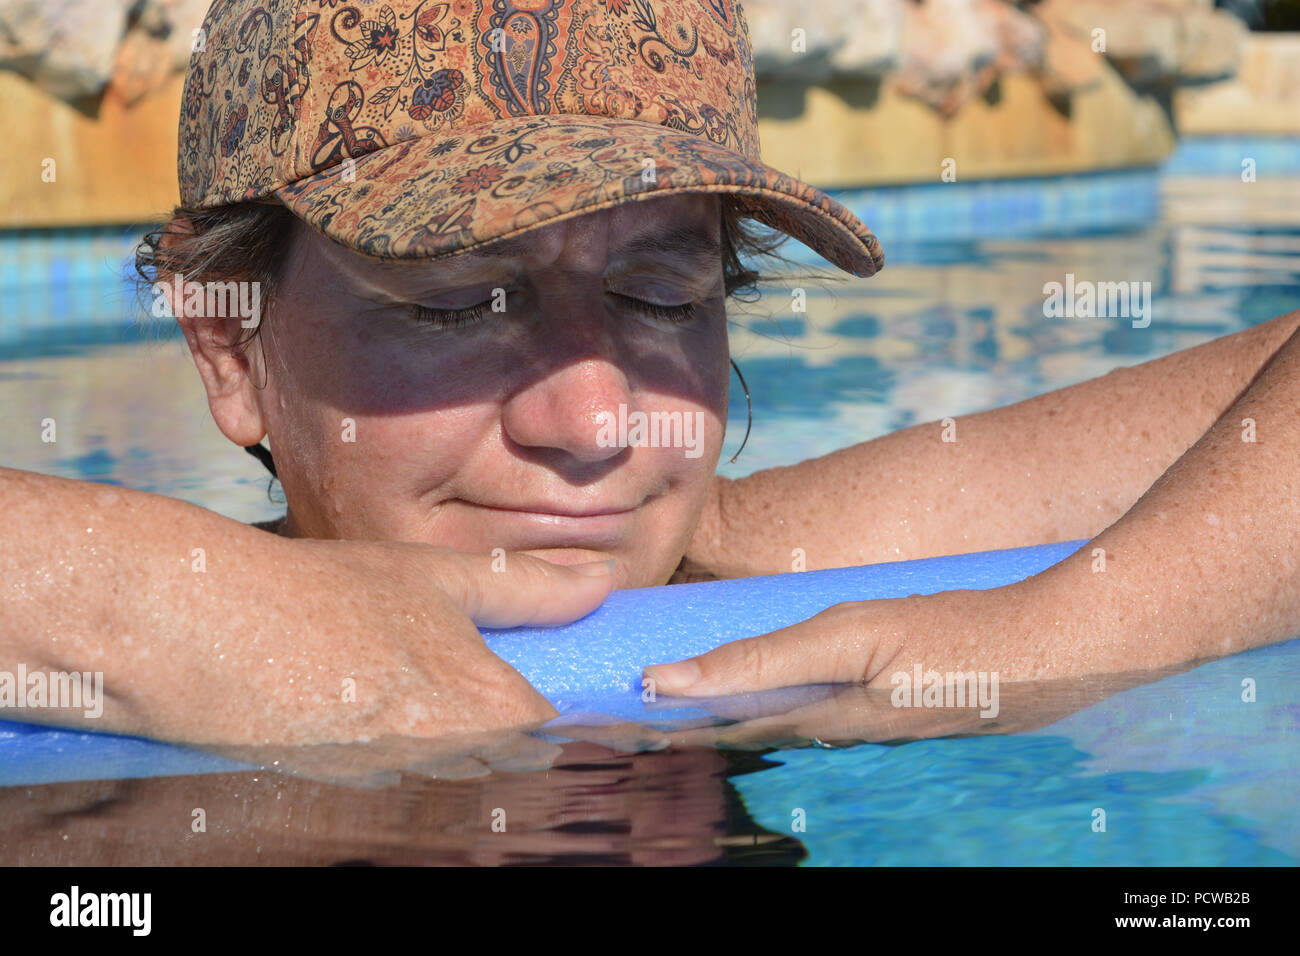 Woman, holding a pool noodle floating in a swimming pool, relaxed, eyes closed - Stock Image